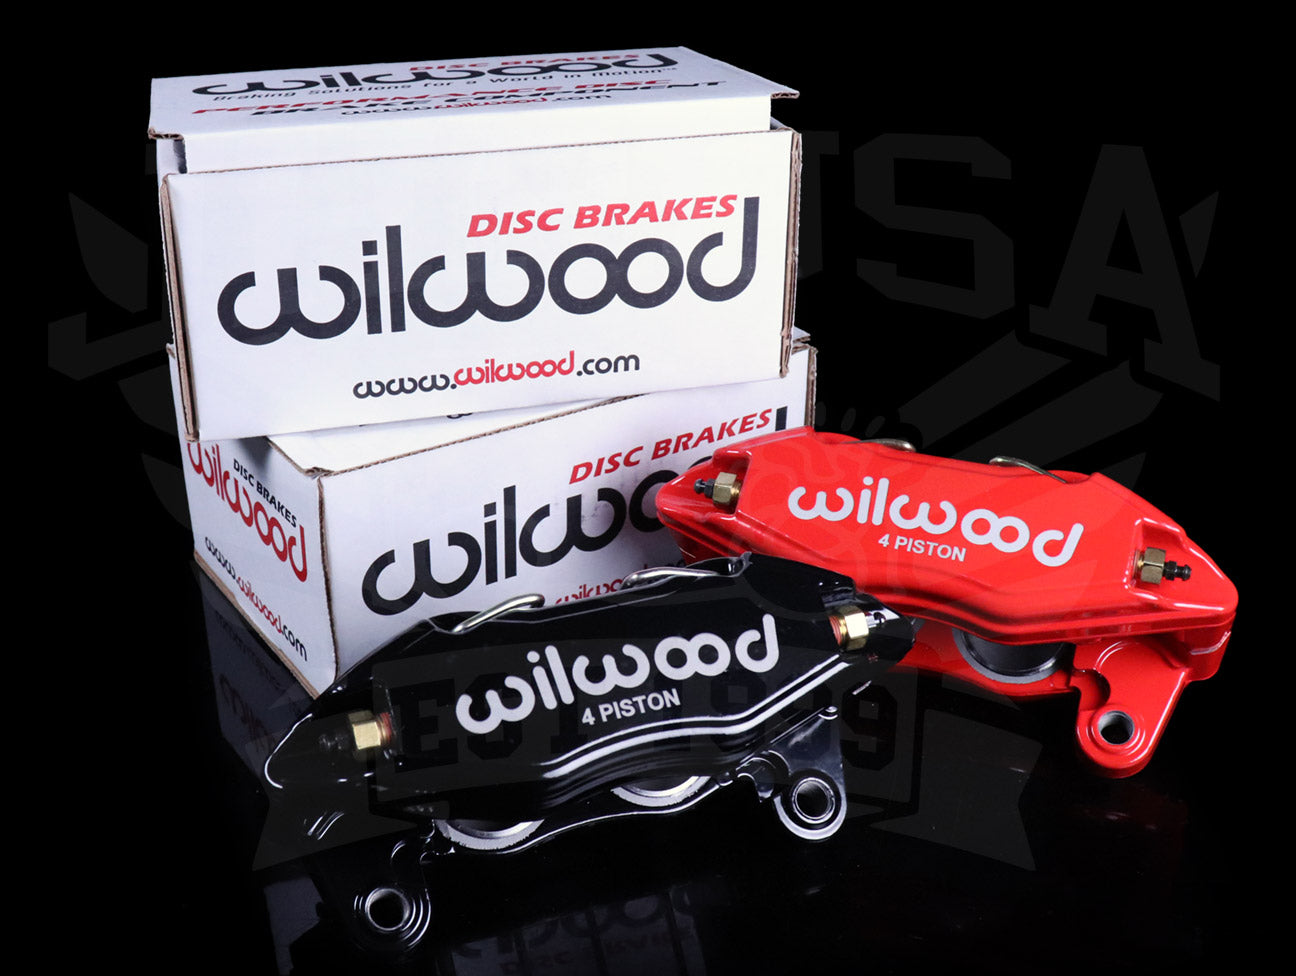 Wilwood Direct Bolt-On DPHA Forged Front Calipers - Honda / Acura